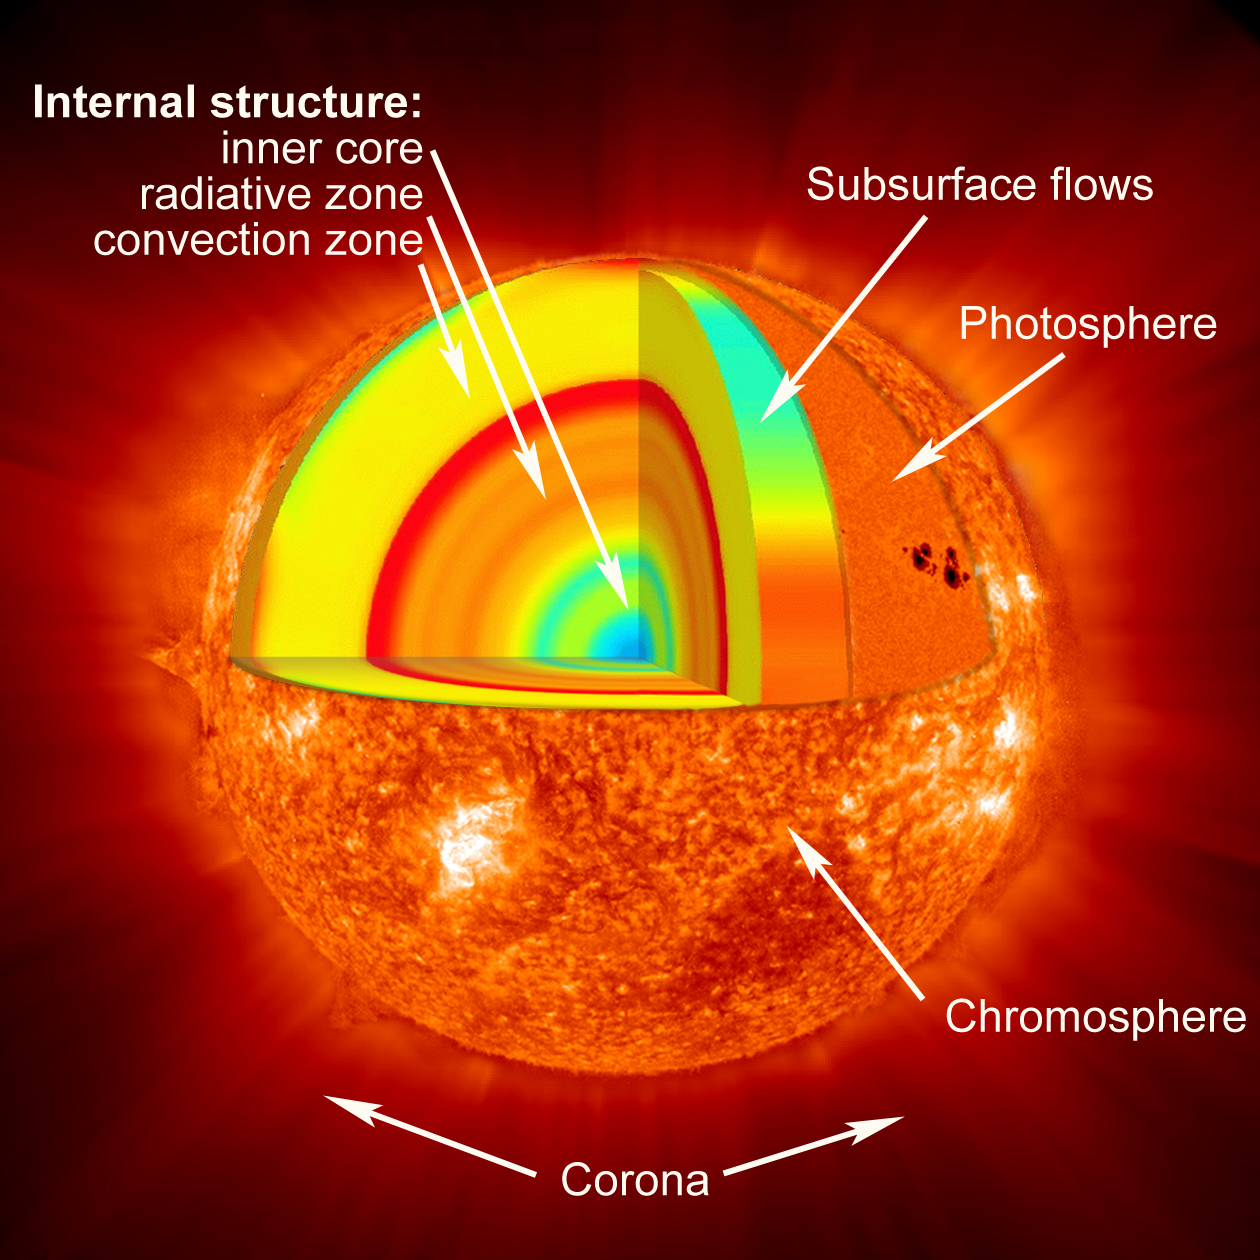 Solar Wind Diagram The Sun And Wiring Diagrams Korndrfer Autotransformer Starter Wikipedia Free Encyclopedia Rh Solarviews Com Turbine Kit Energy Tower